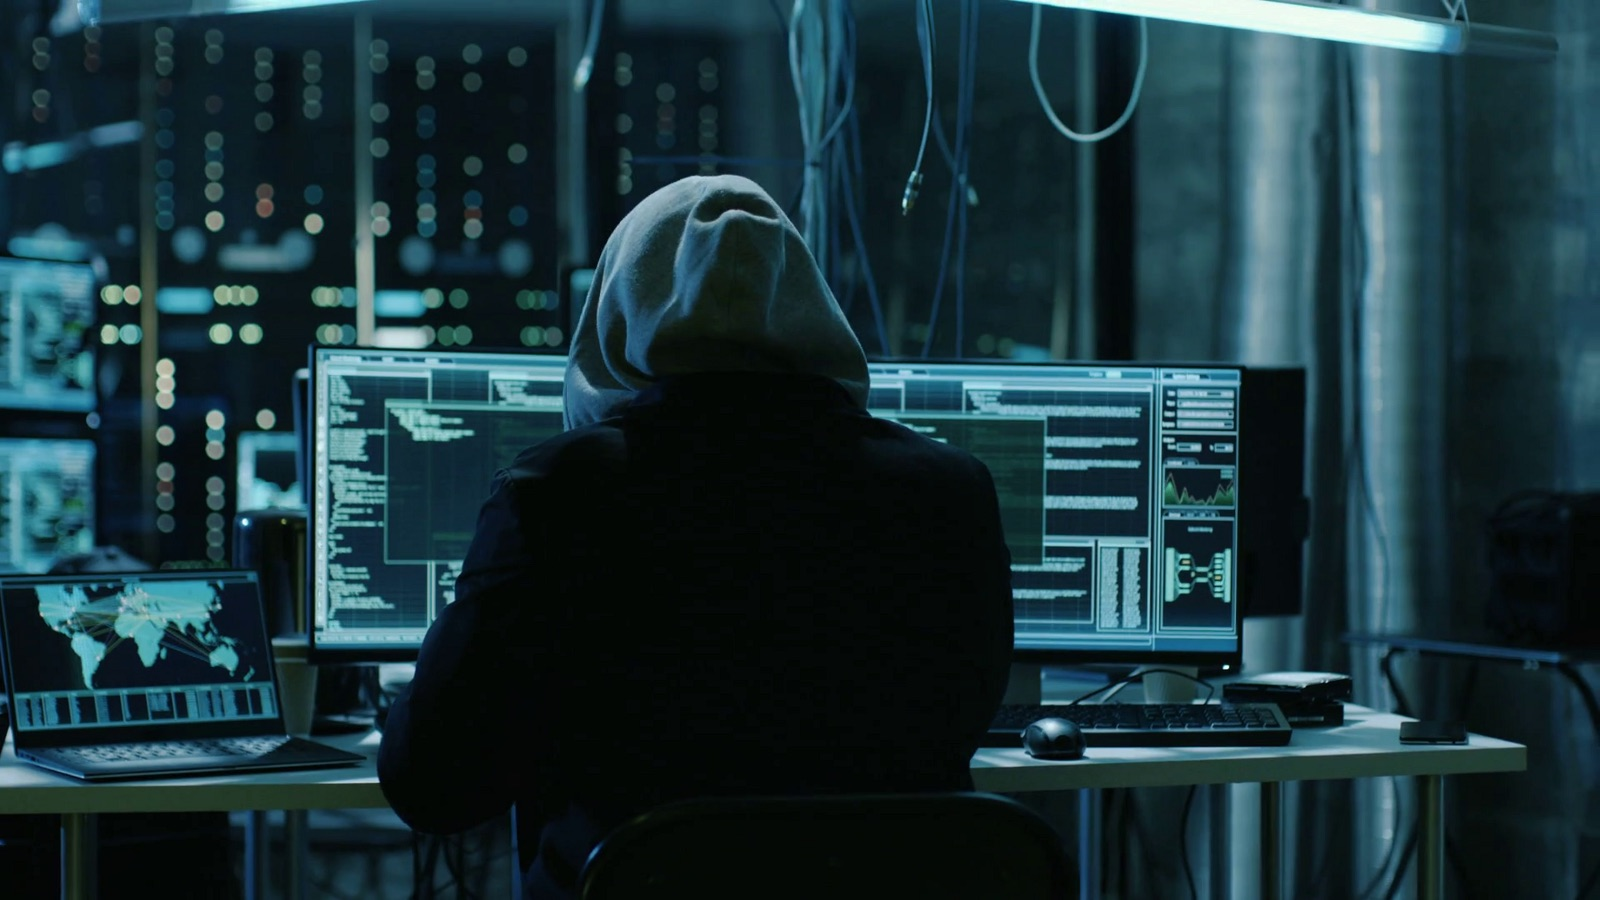 How to protect your home network and devices